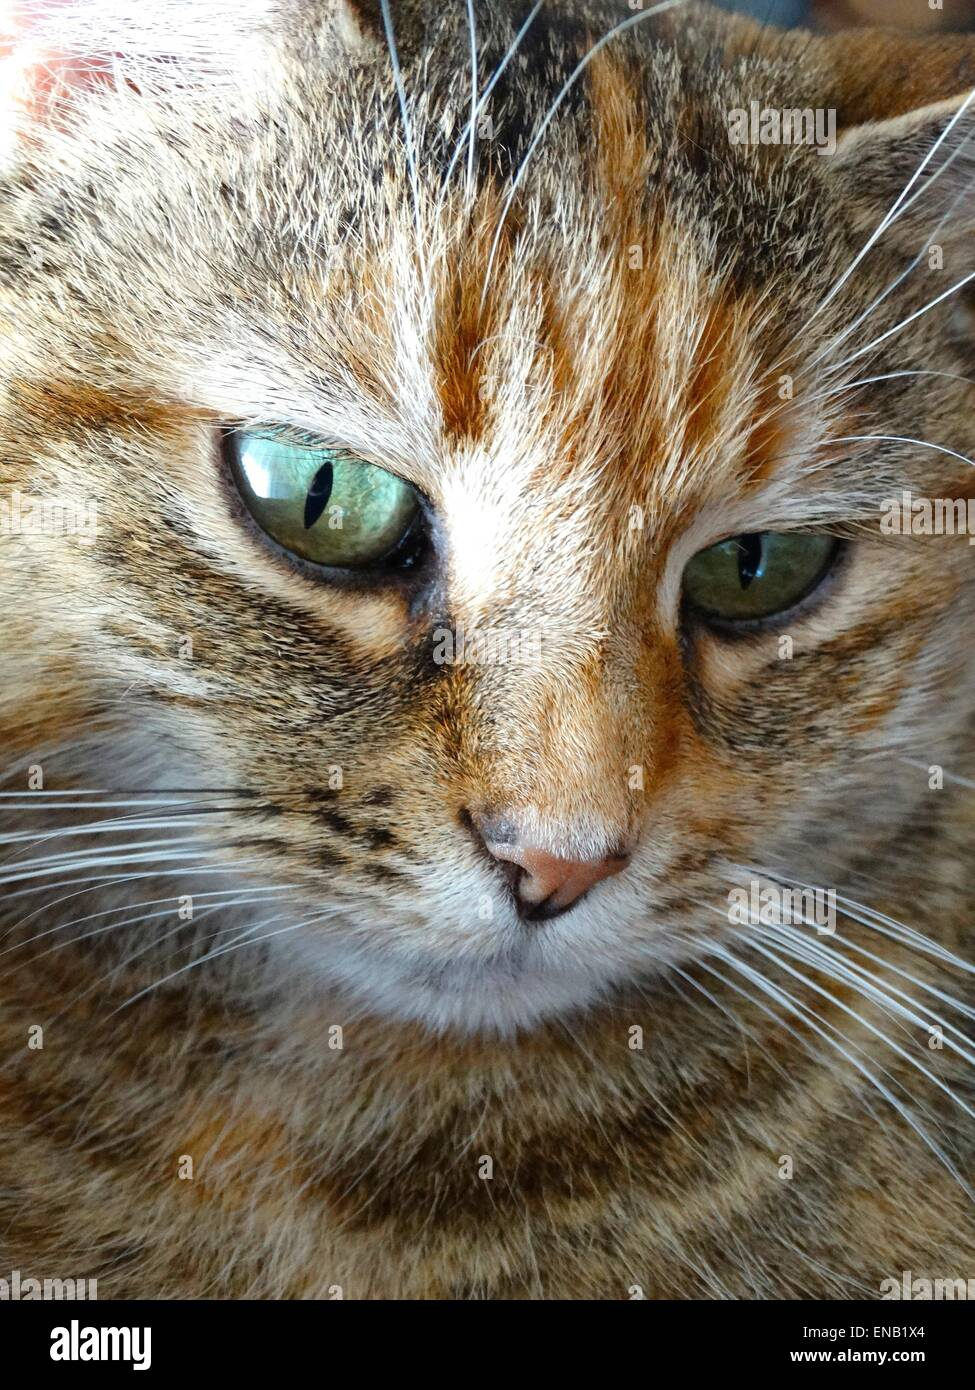 Close up of a tabby cat looking down - Stock Image